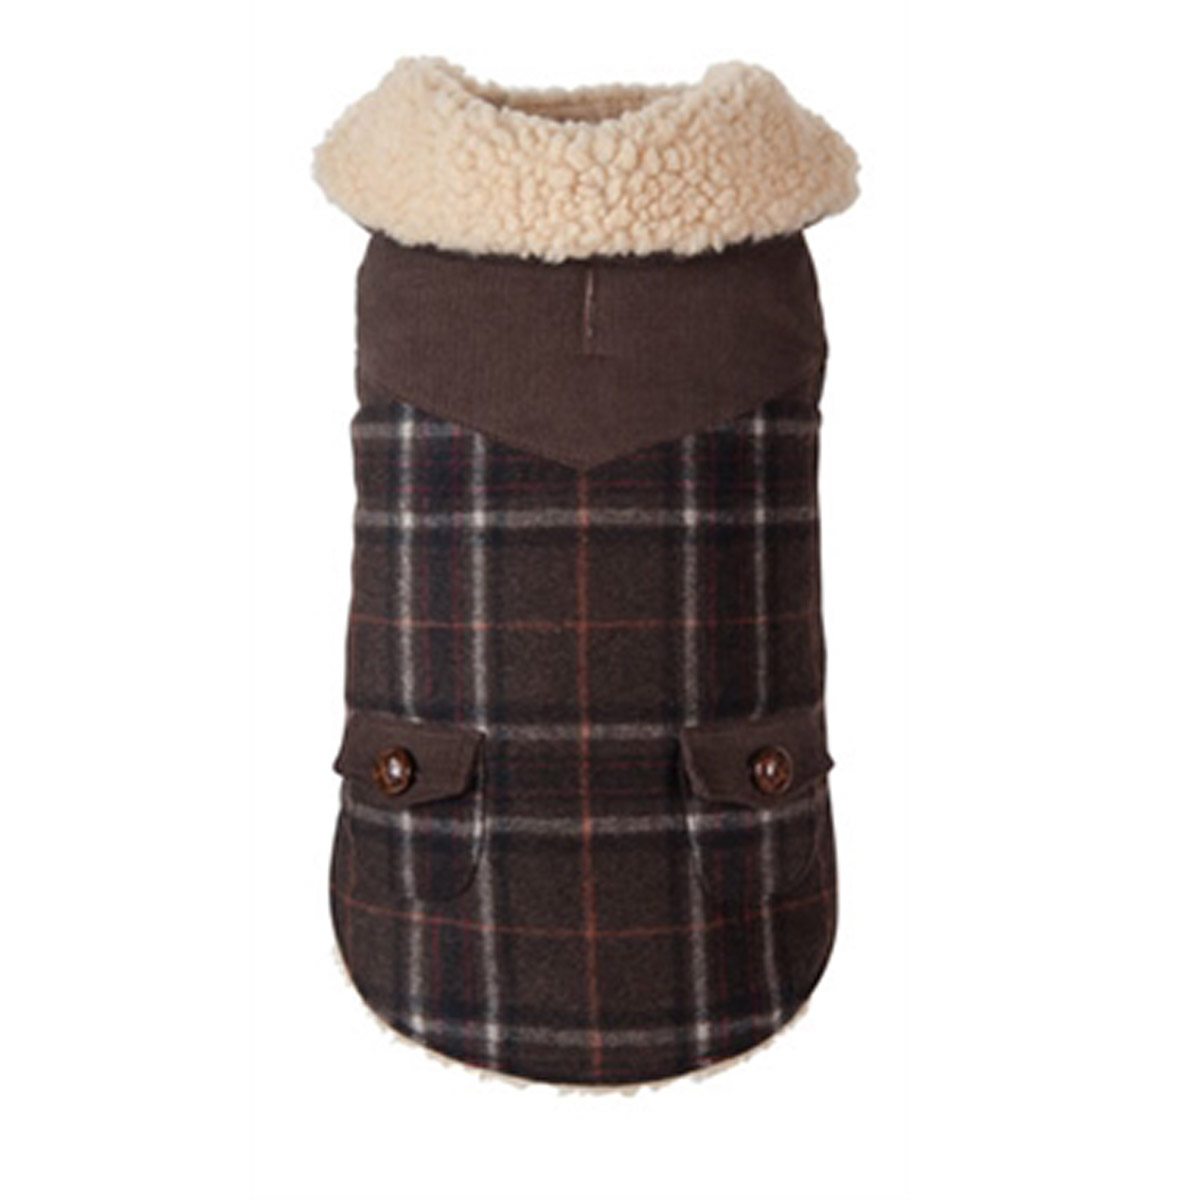 fabdog® Wool Plaid Shearling Dog Jacket - Olive